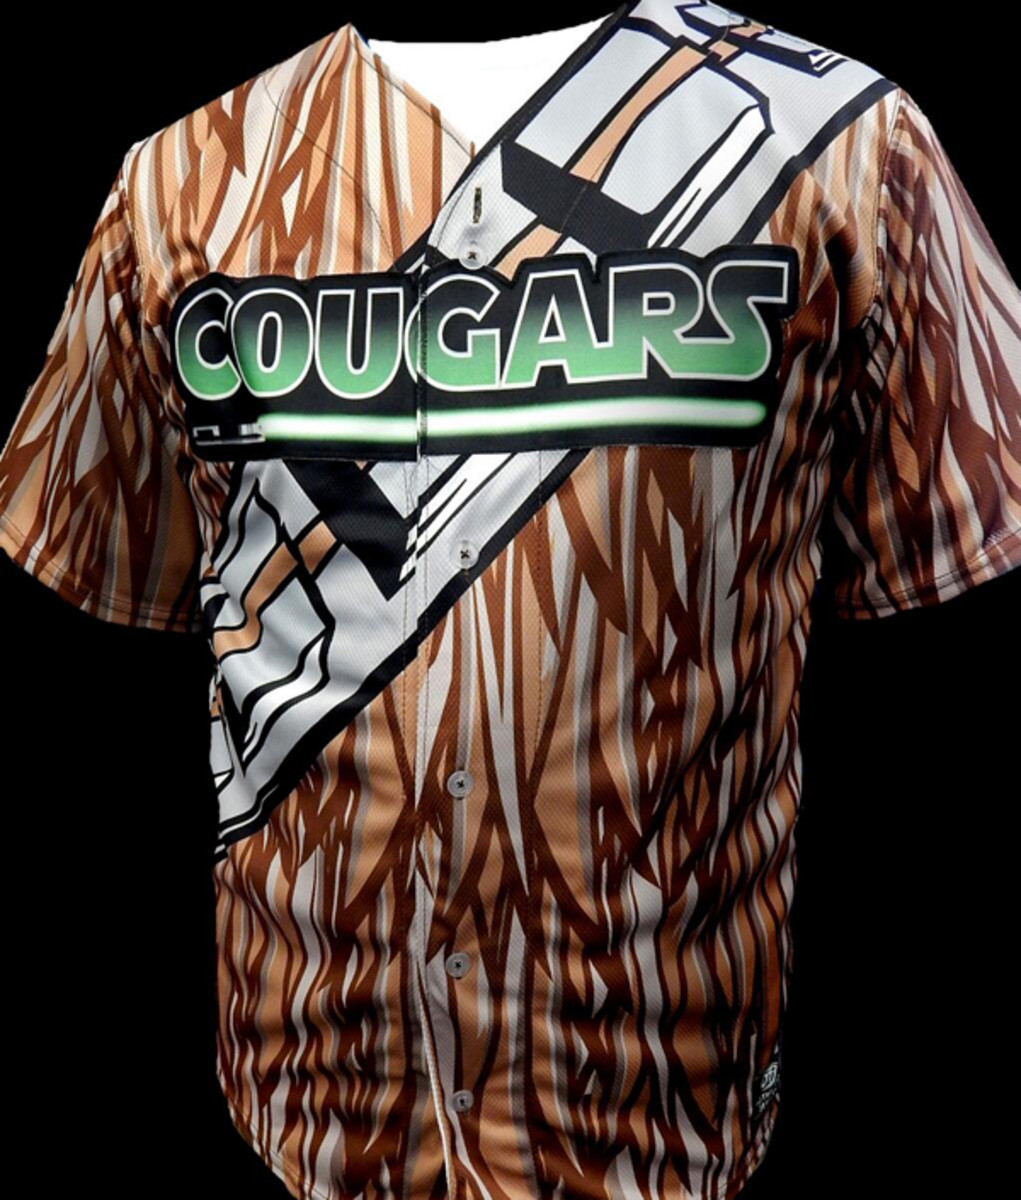 kane county cougars star wars chewbacca jerseys